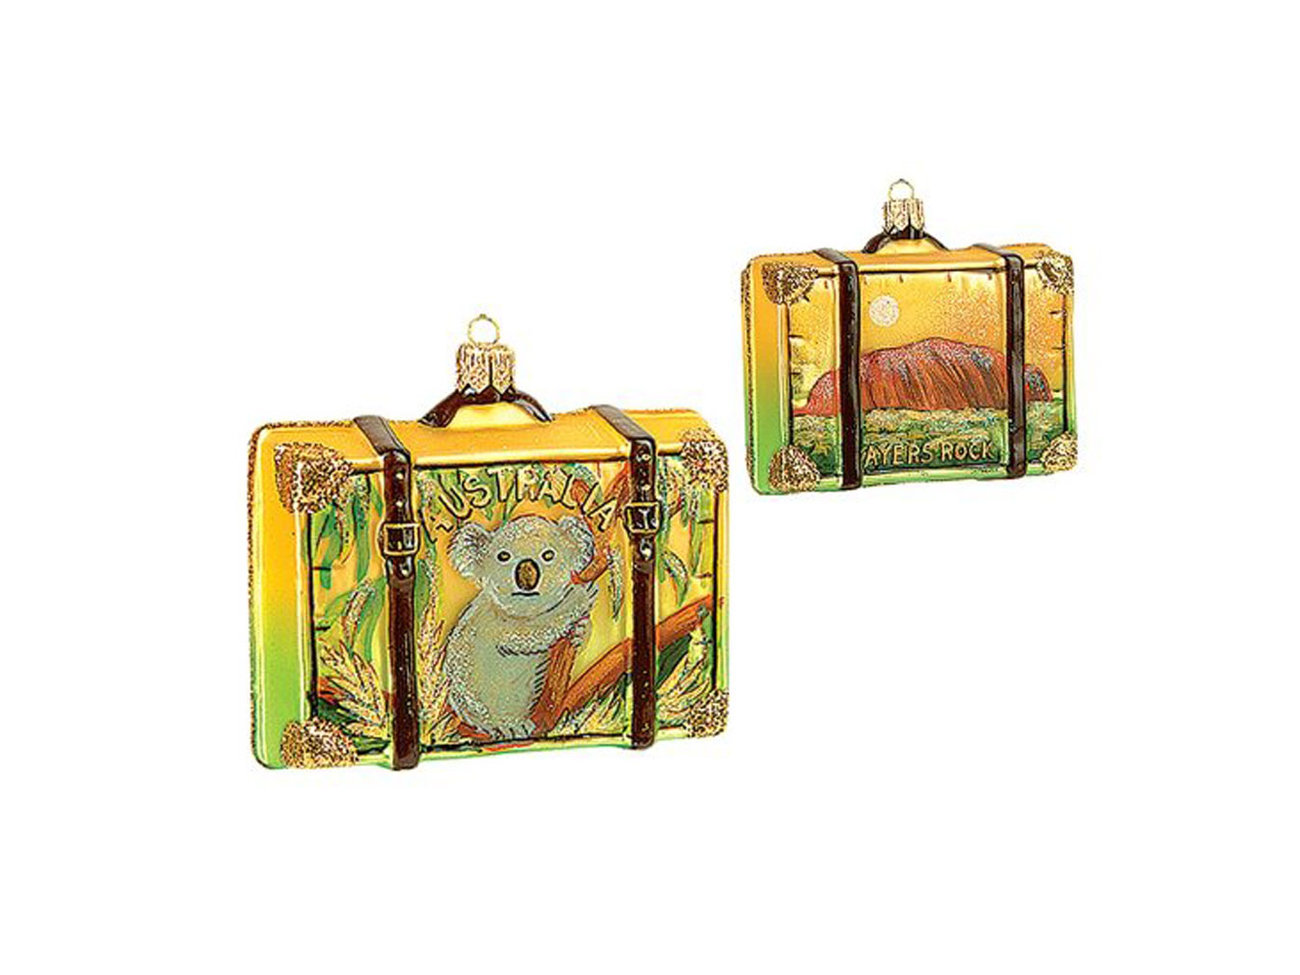 koala-suitcase-ORNAMENTS0716.jpg